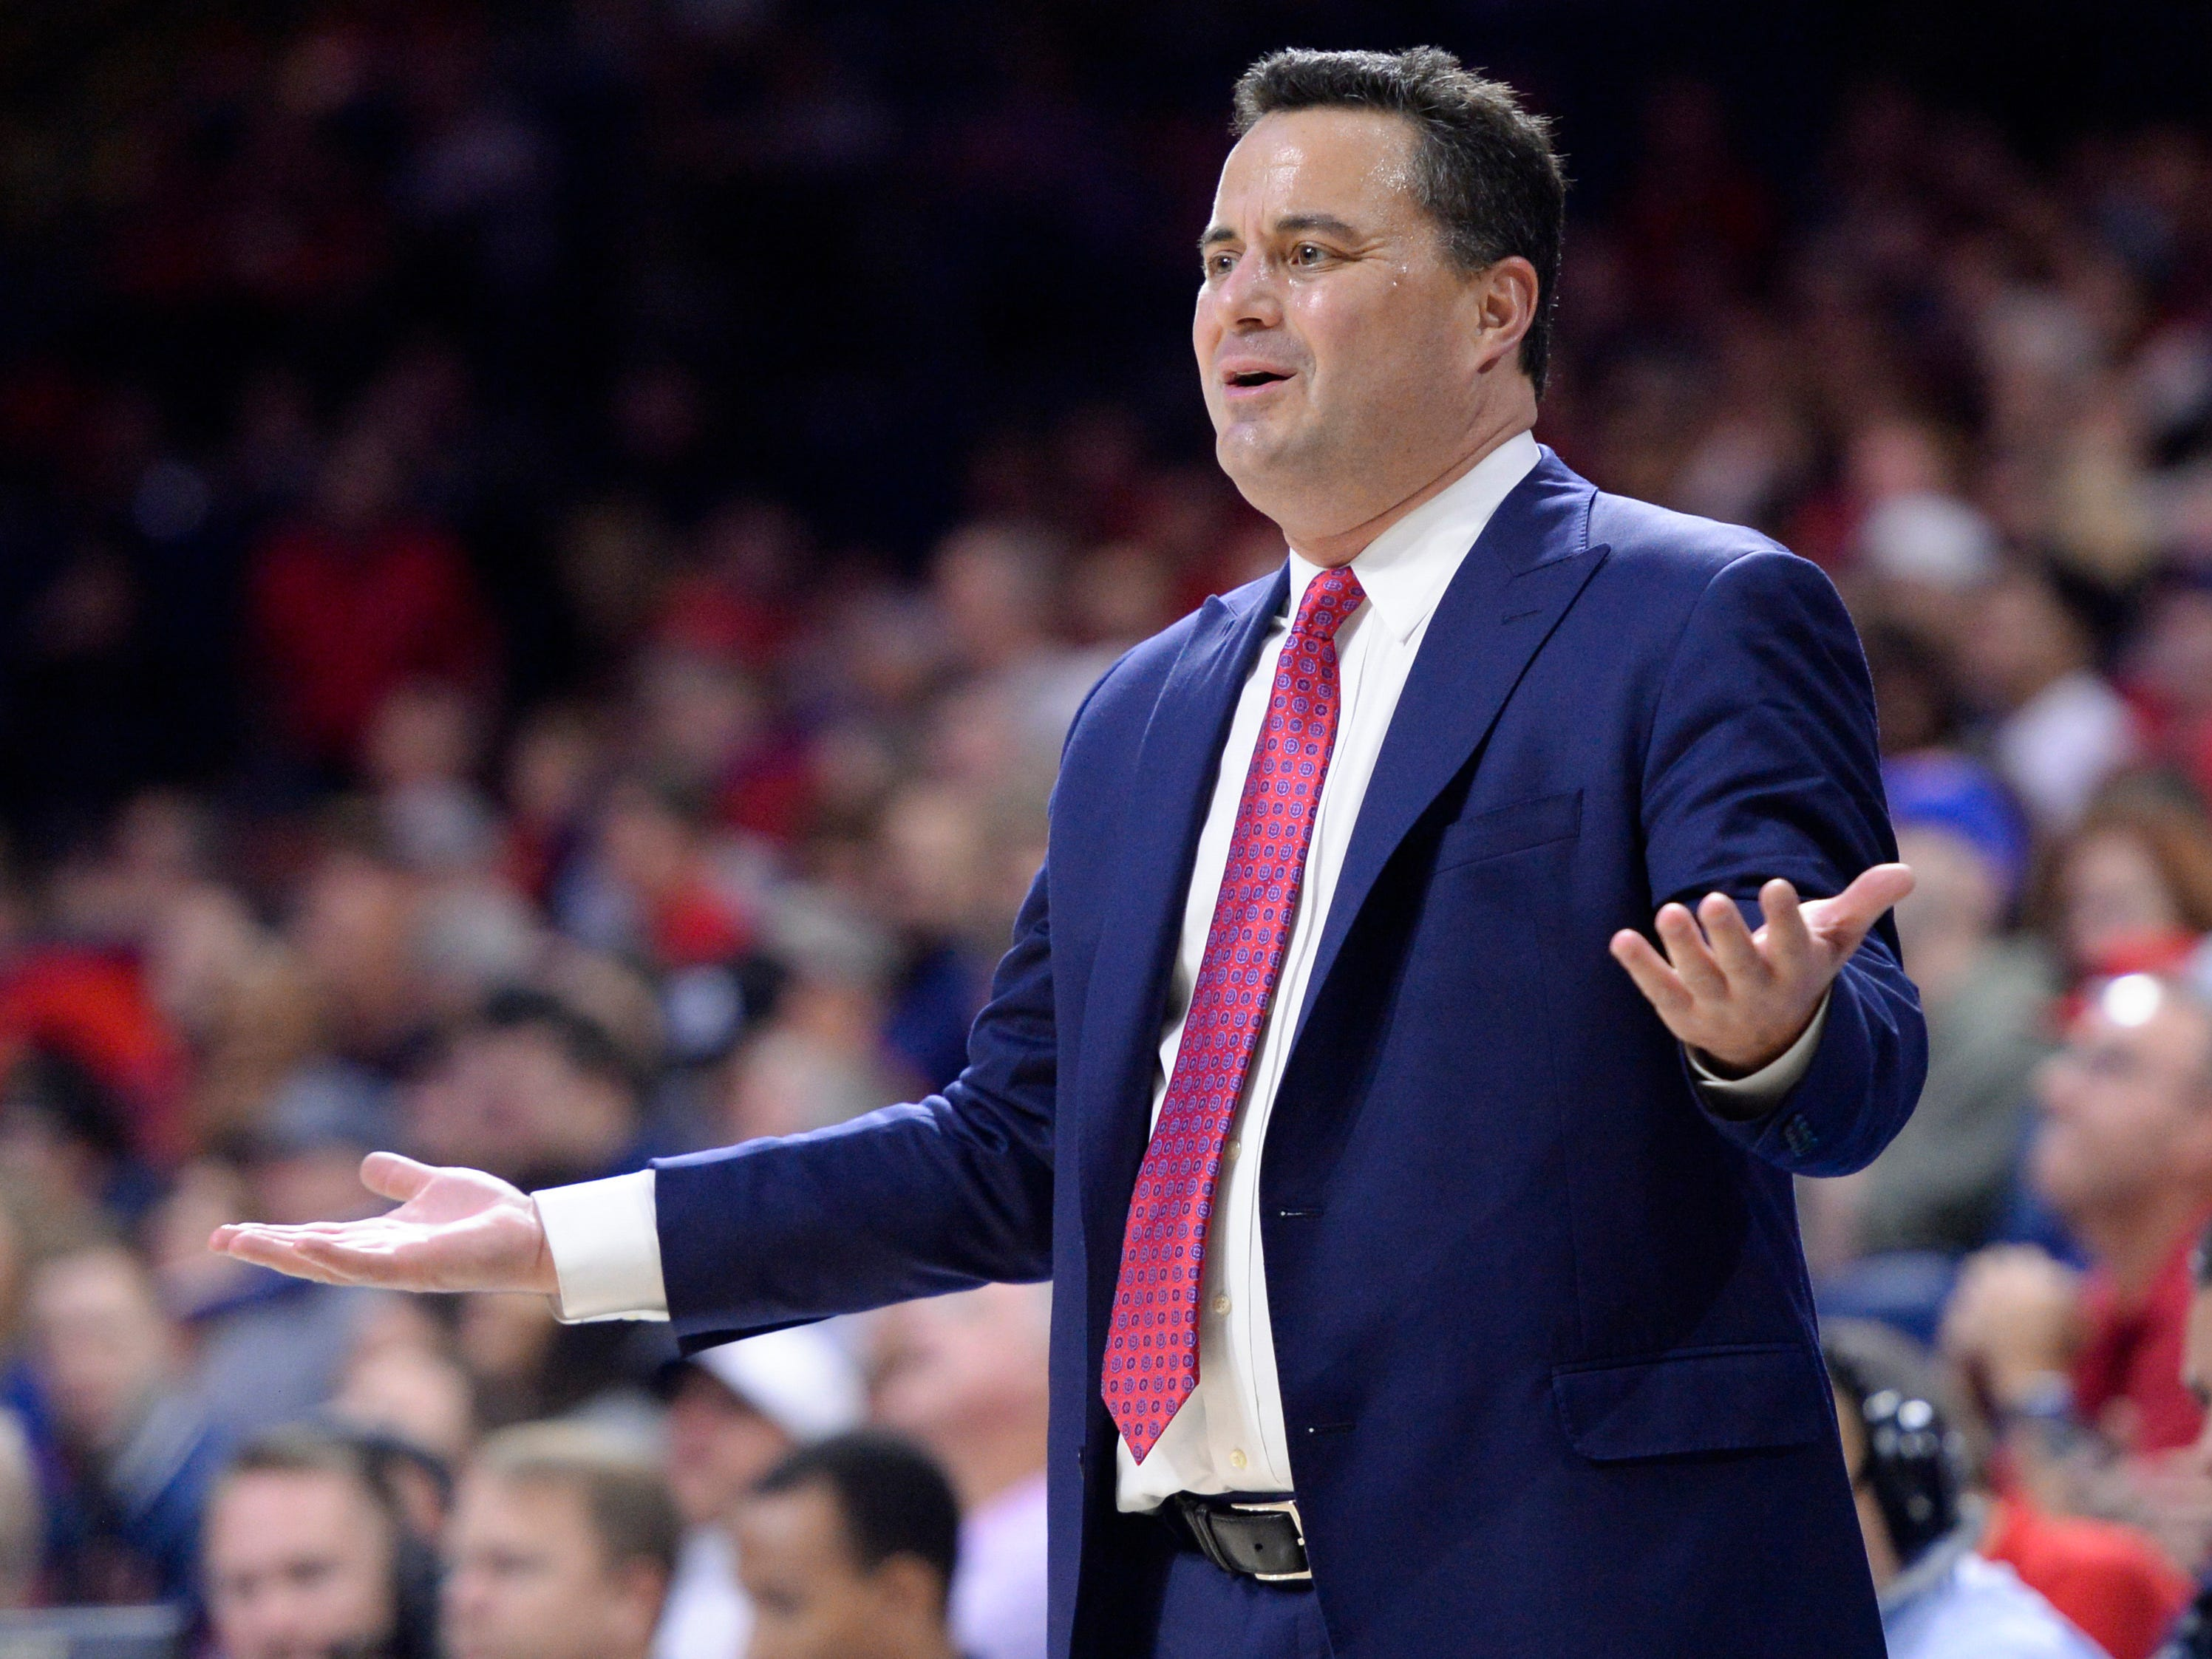 Nov 7, 2018; Tucson, AZ, USA; Arizona Wildcats head coach Sean Miller reacts to a call during the first half against the Houston Baptist Huskies at McKale Center. Mandatory Credit: Casey Sapio-USA TODAY Sports